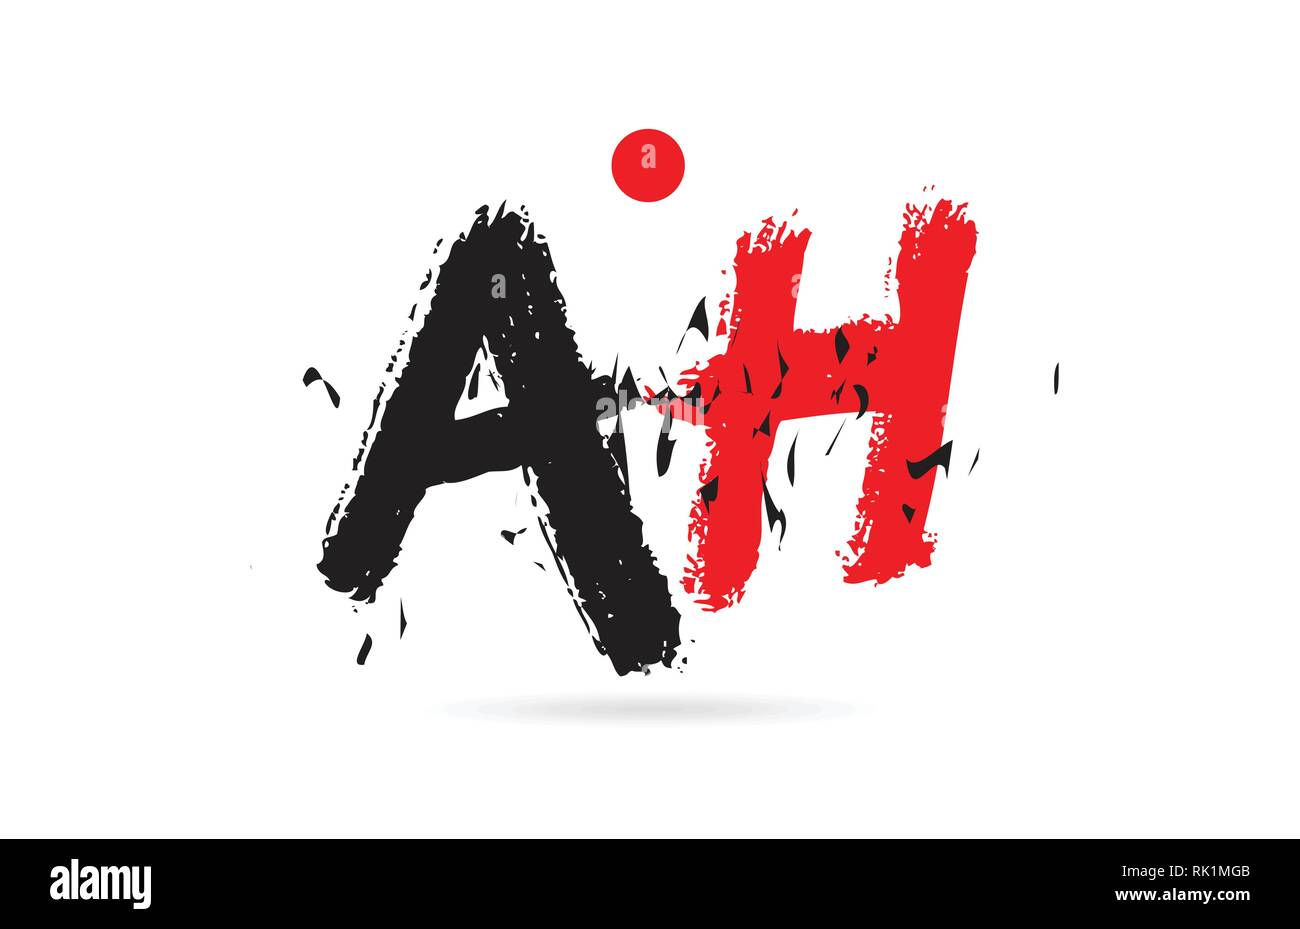 Design of alphabet letter combination AH A H with grunge